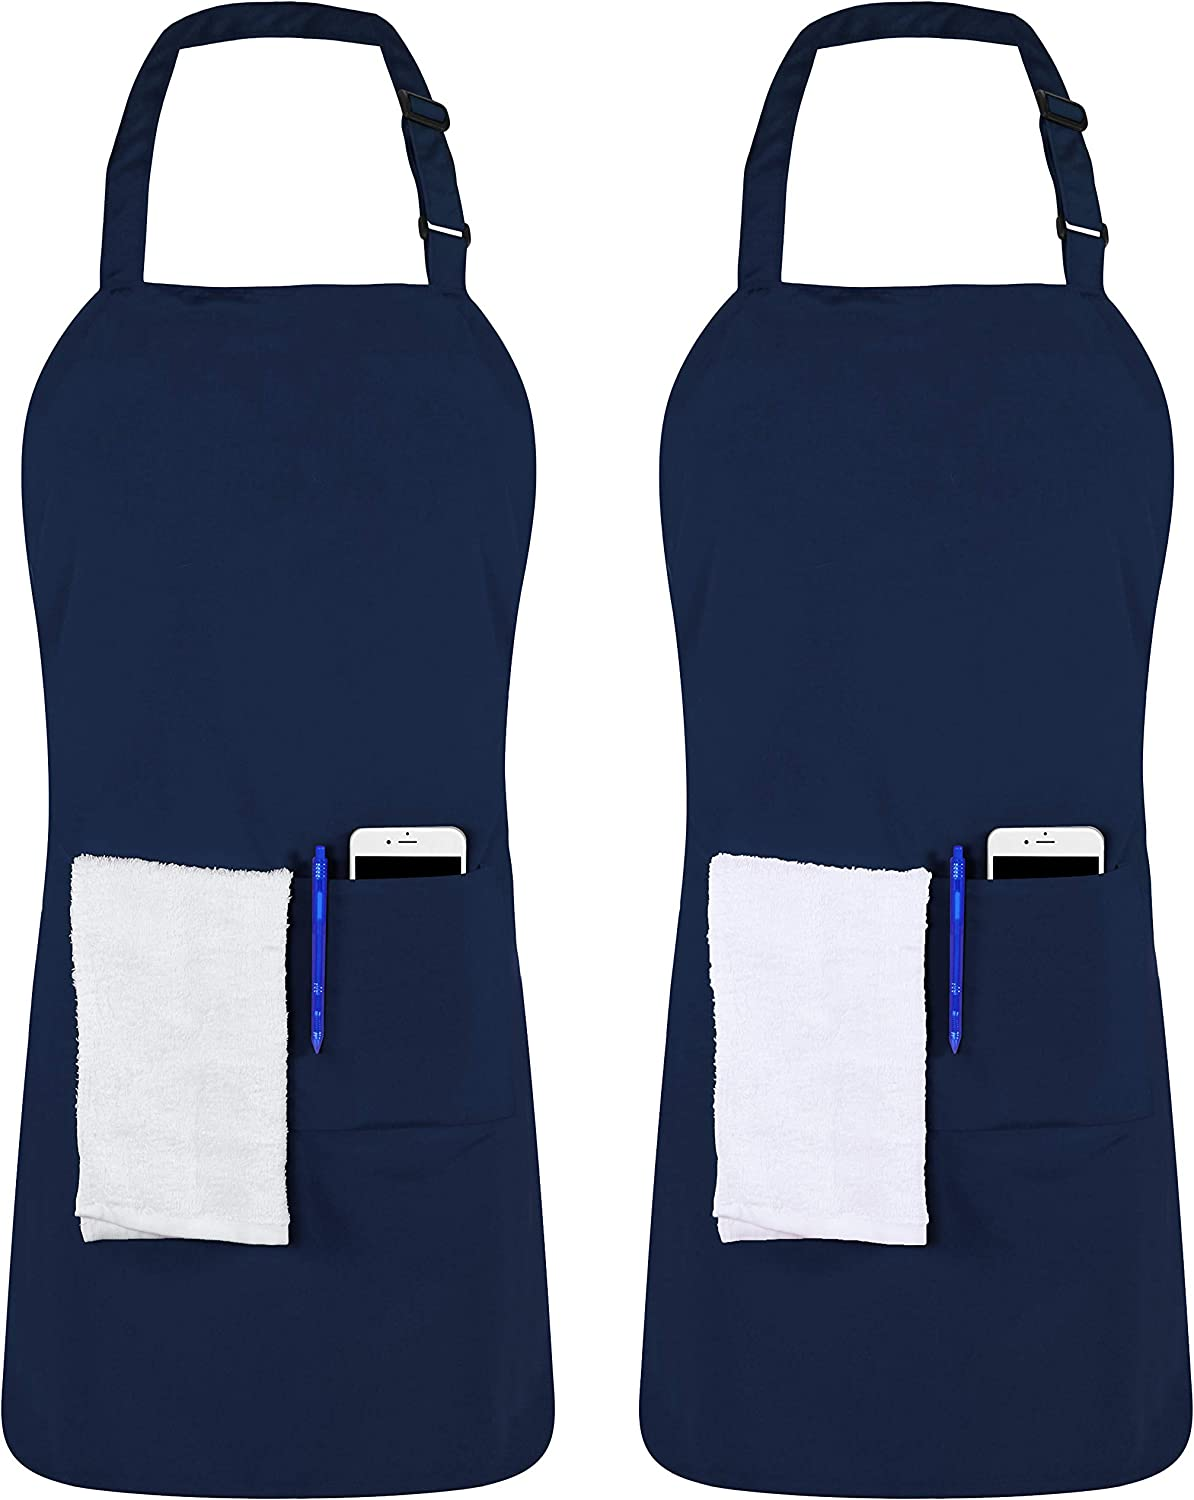 Utopia Kitchen 2 Pack Adjustable Bib Apron with 2 Pockets, 32 x 28 Inches